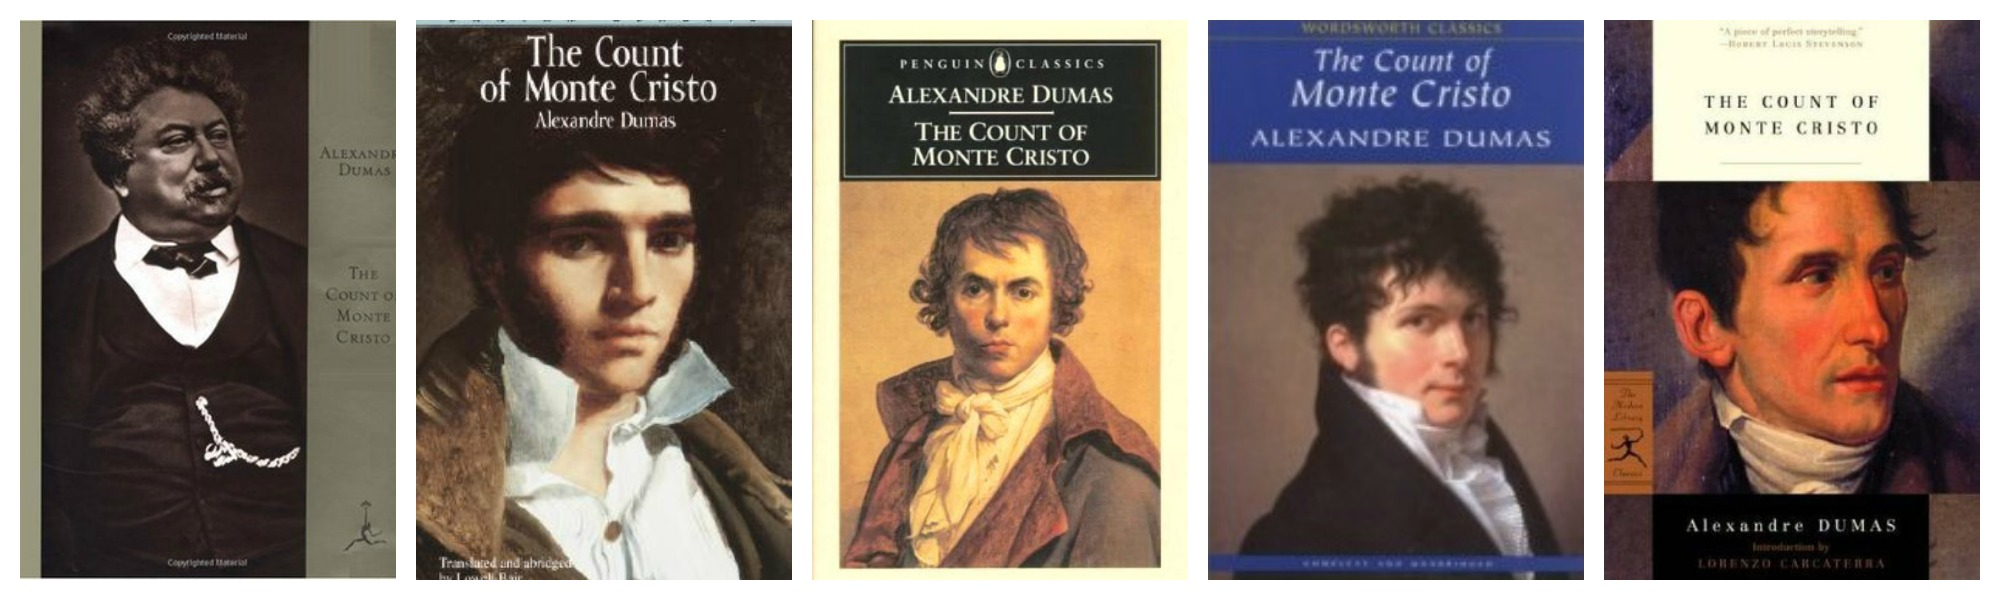 The Count of Monte Cristo Covers 2